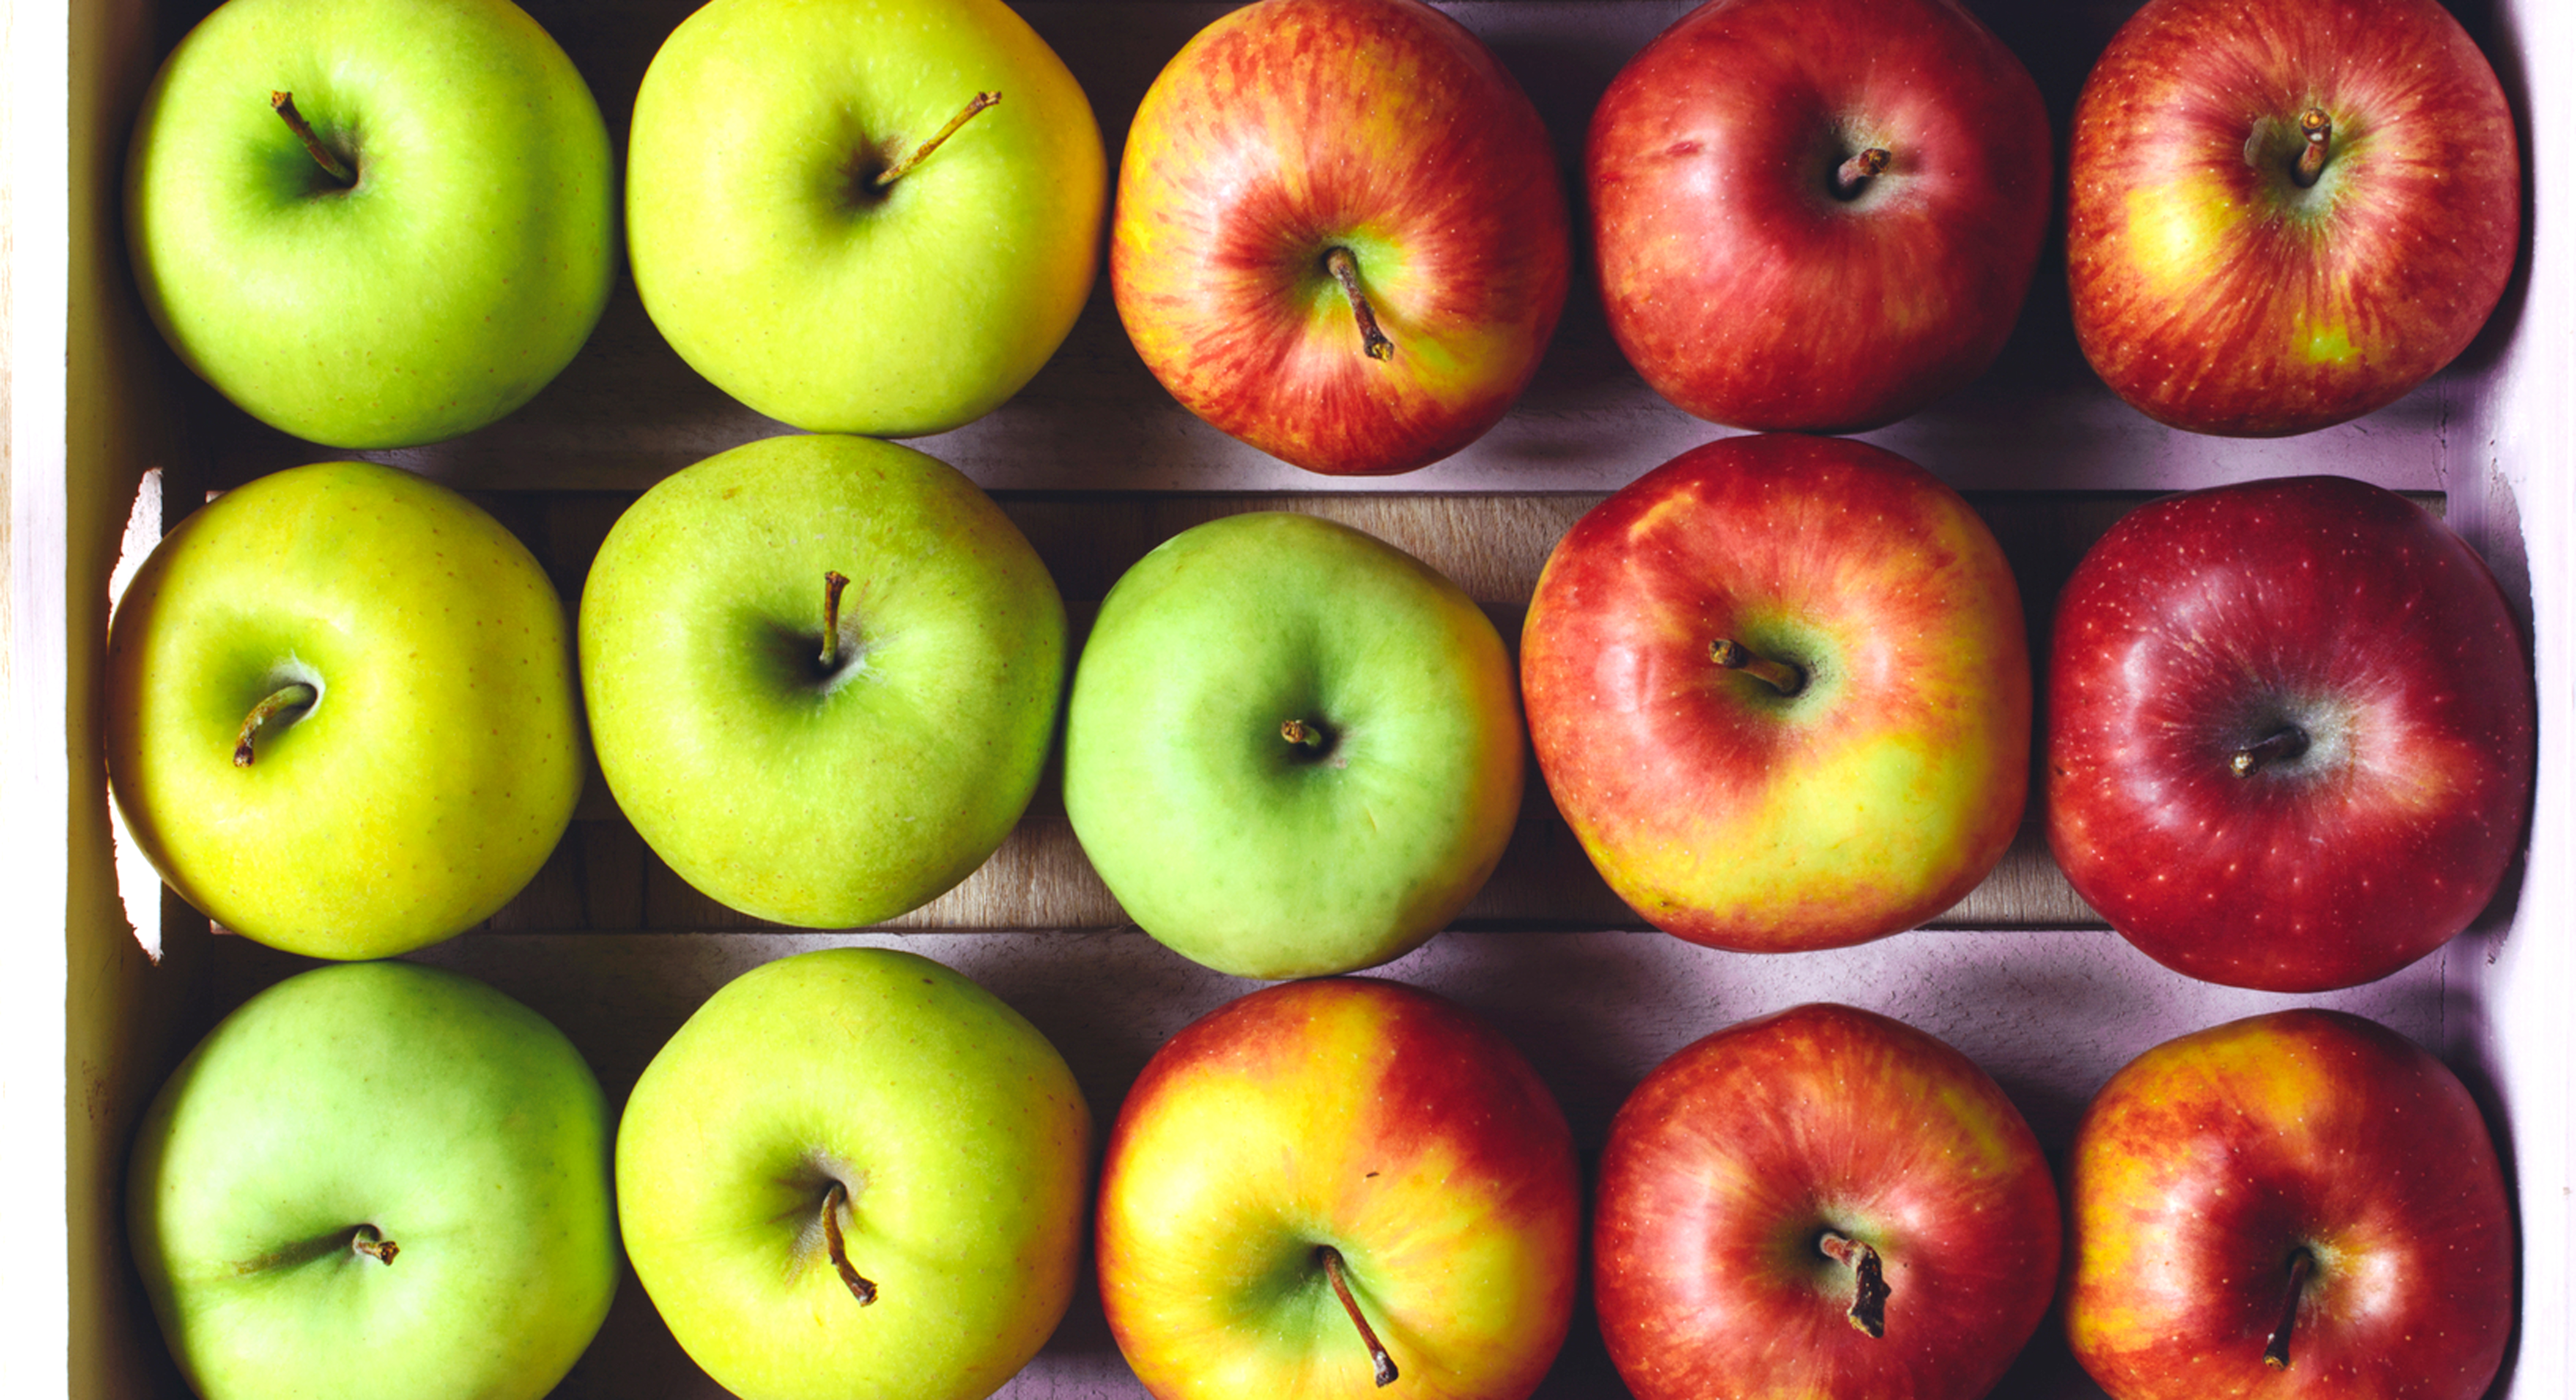 Nutritional Value in Apples